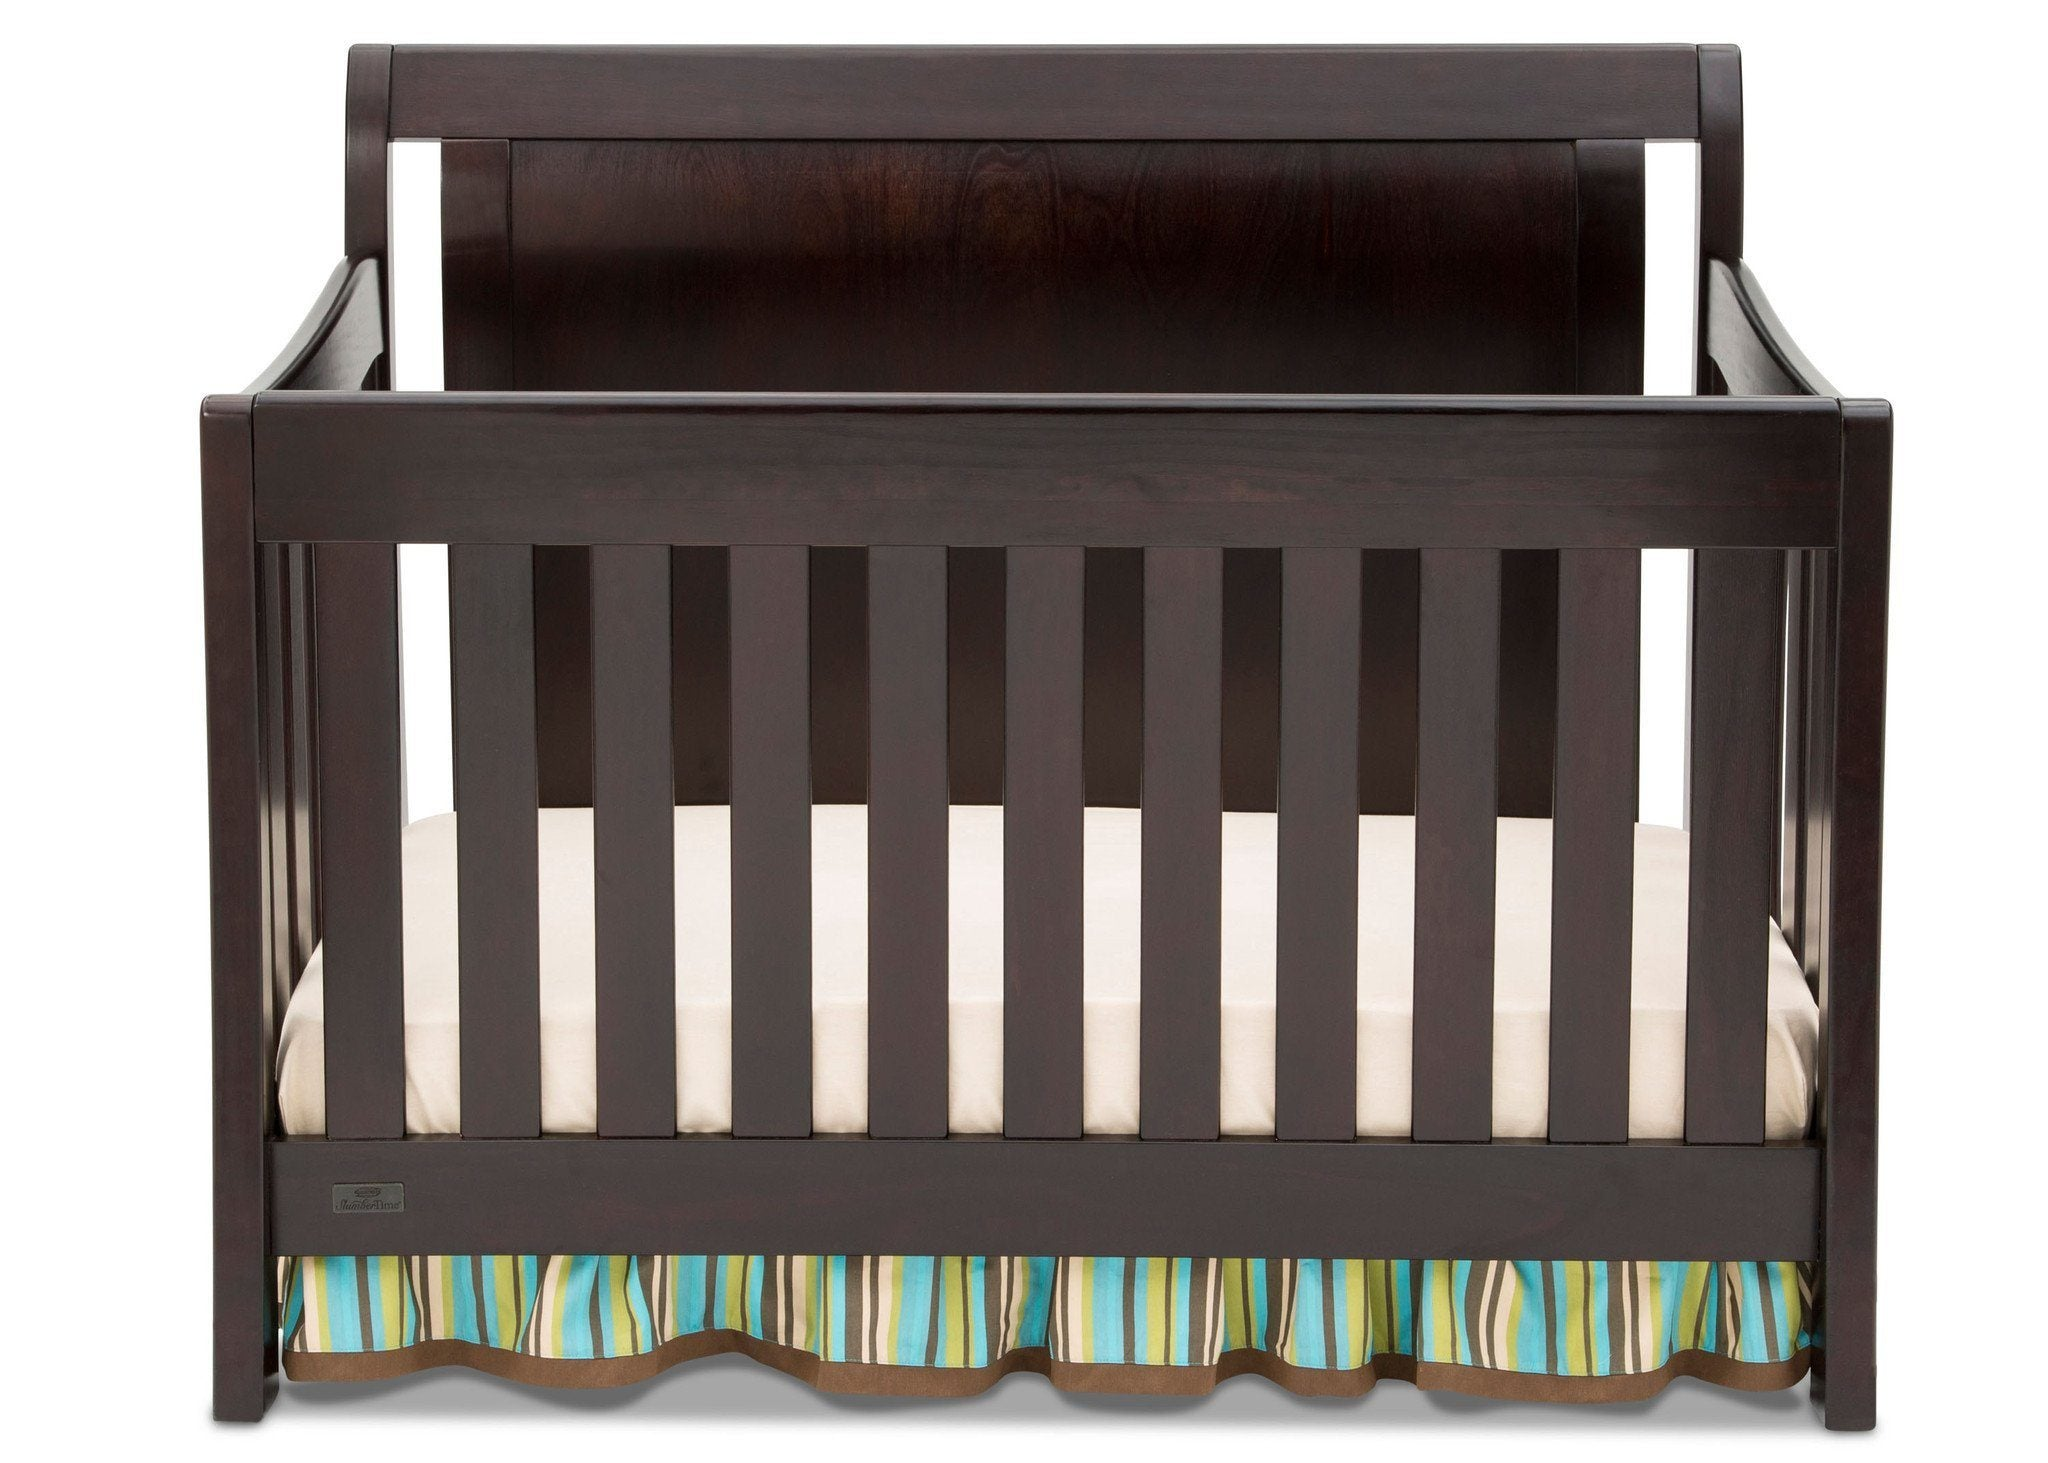 Simmons Kids Black Espresso (907) Madisson Crib 'N' More, Crib Conversion b1b